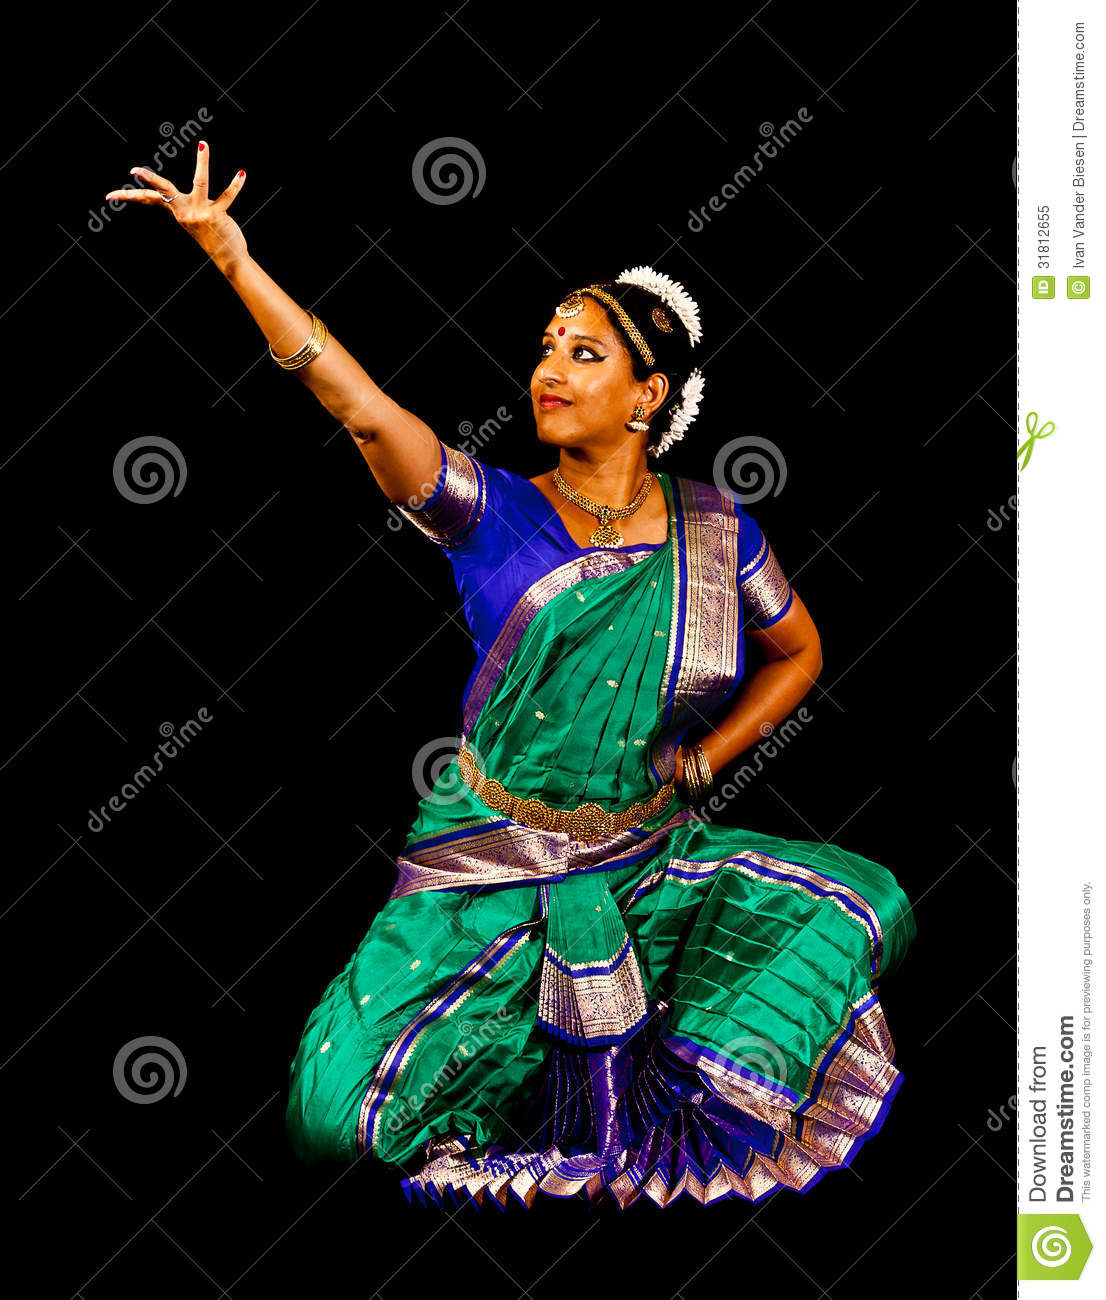 949 Indian Classical Dance Face Expression Photos Free Royalty Free Stock Photos From Dreamstime